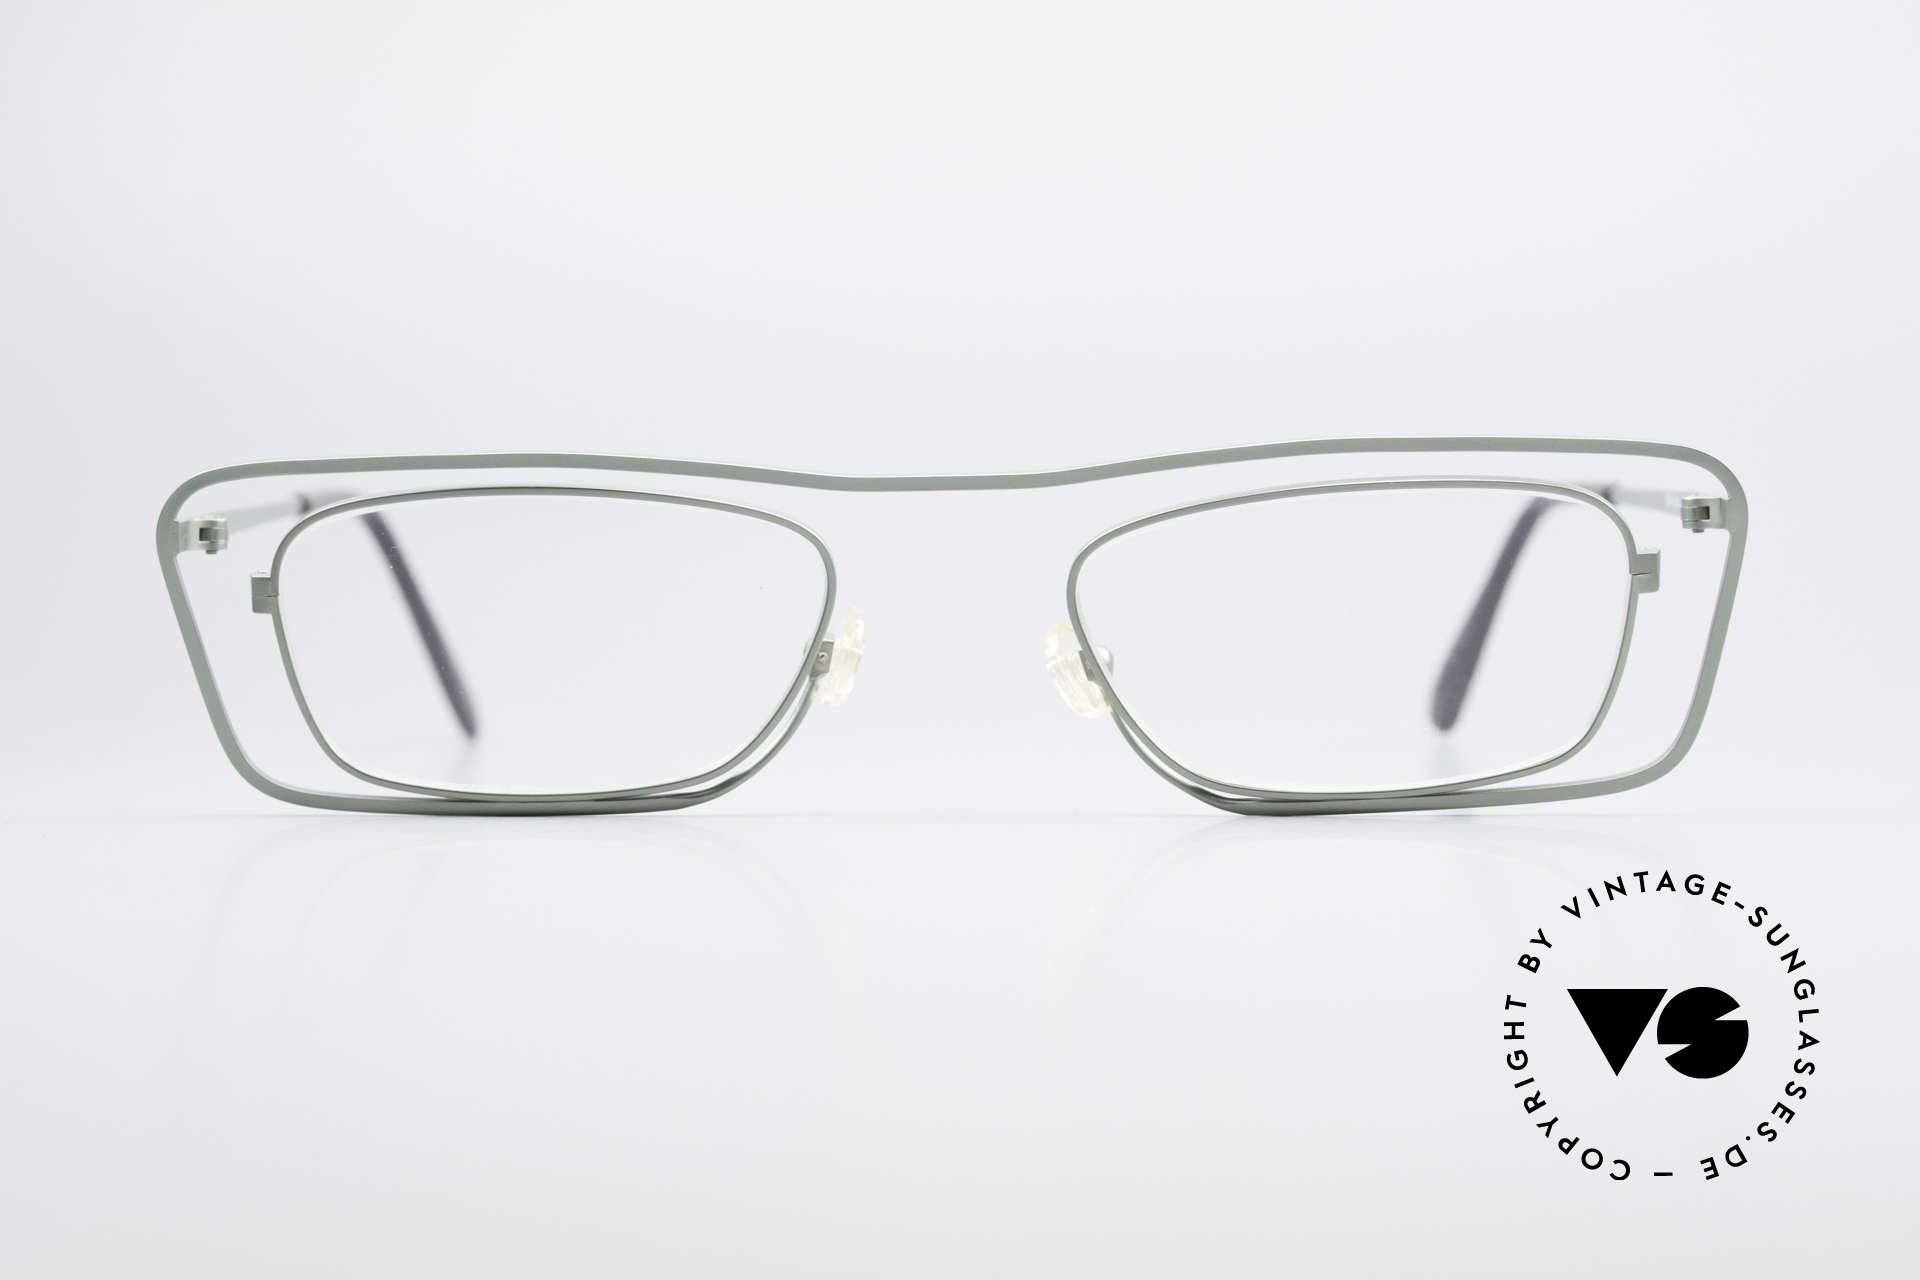 Theo Belgium Papa Vintage Glasses For Papa, founded in 1989 as 'opposite pole' to the 'mainstream', Made for Men